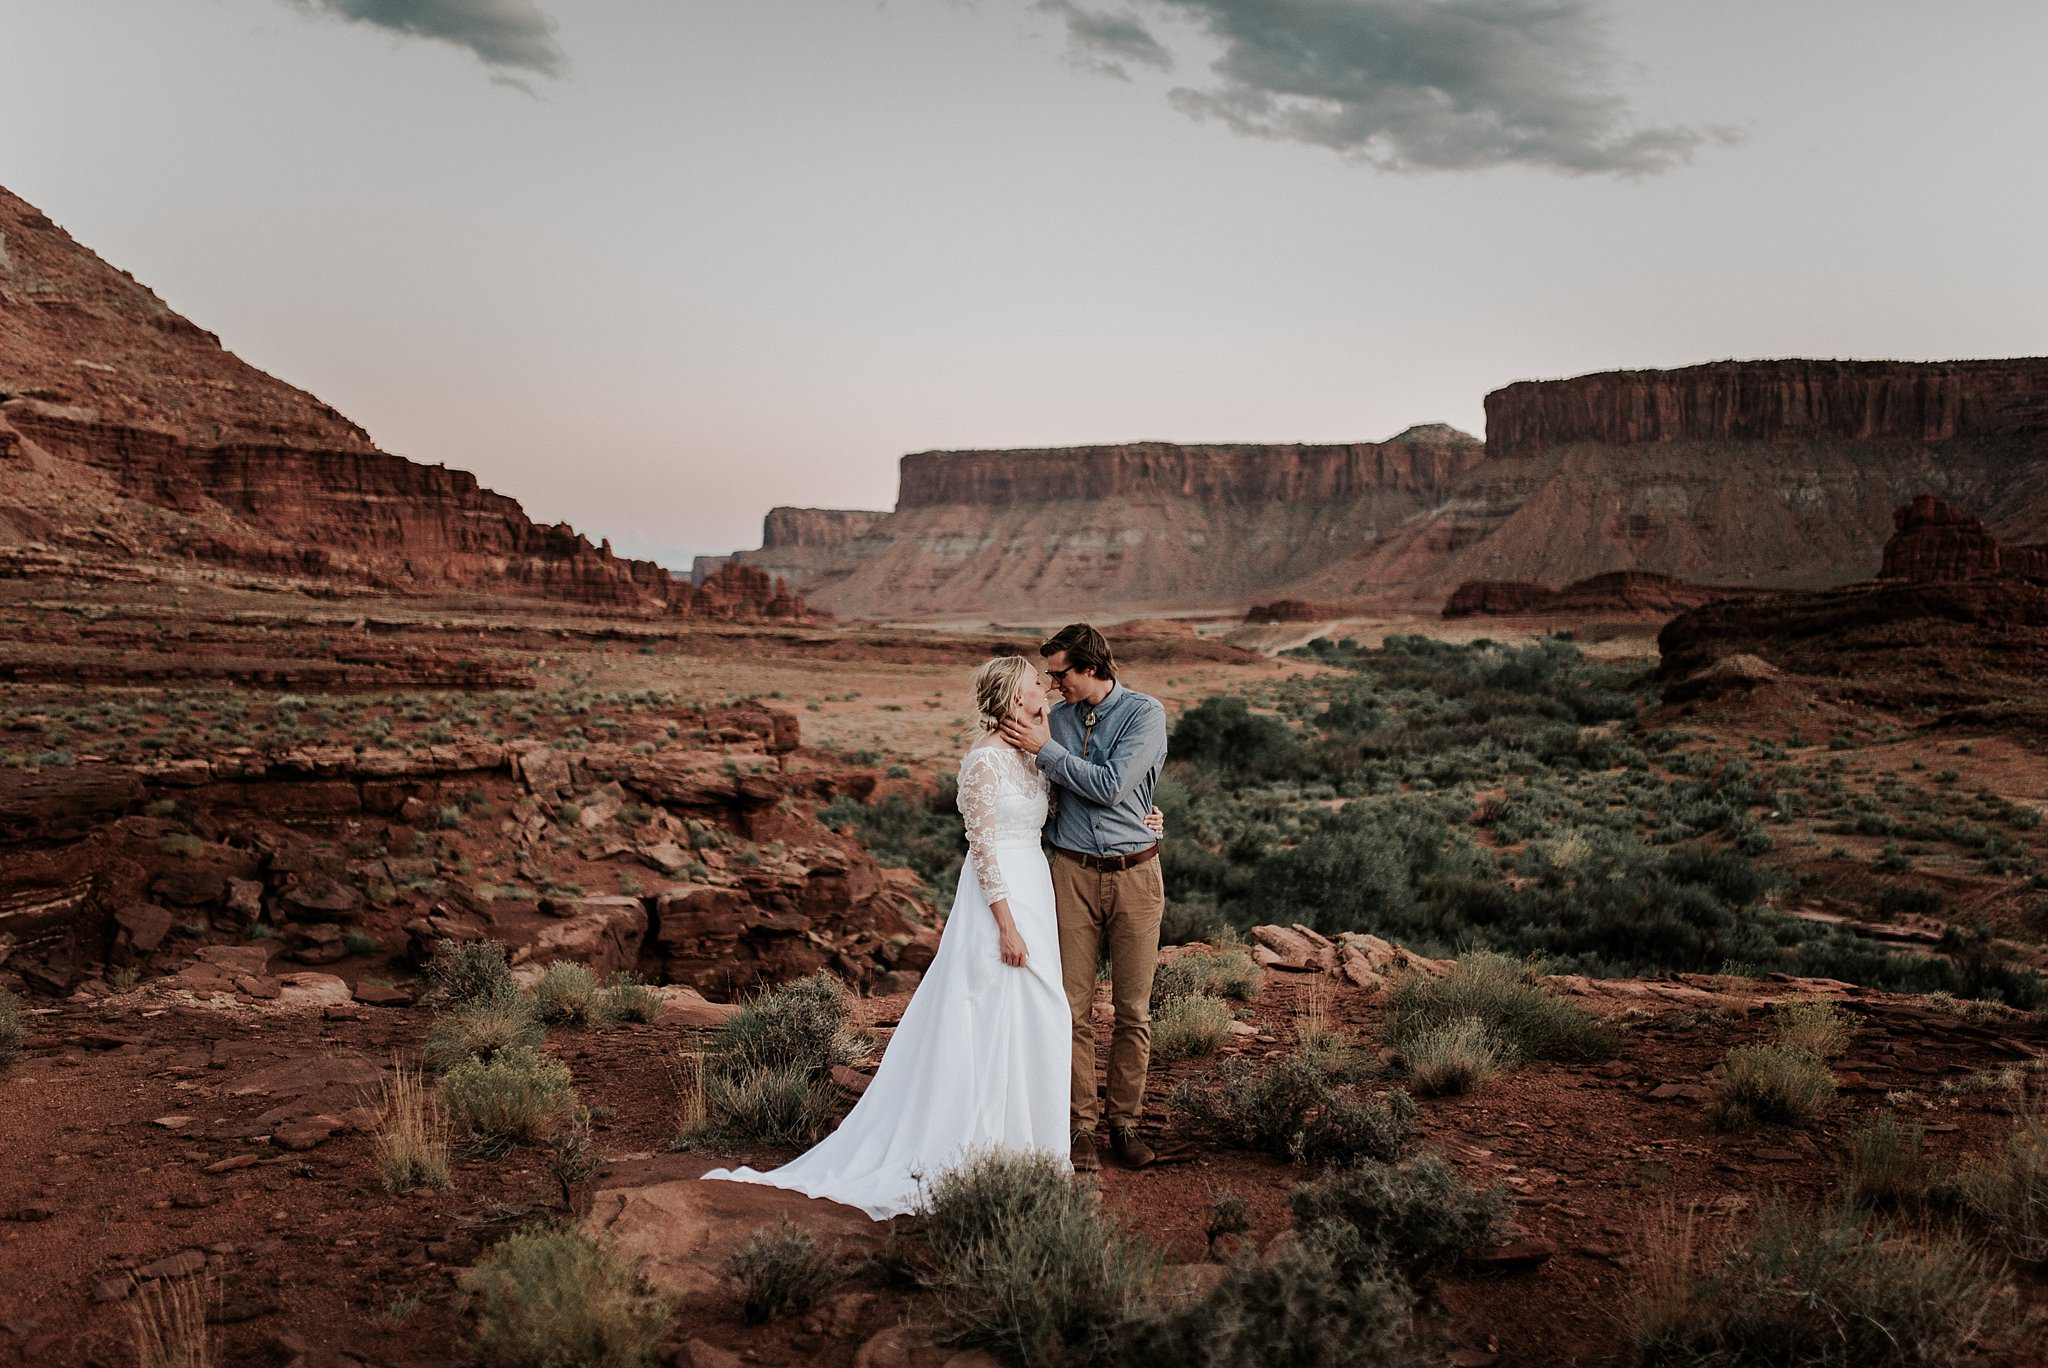 Wedding couple hiking through the Utah desert after getting married